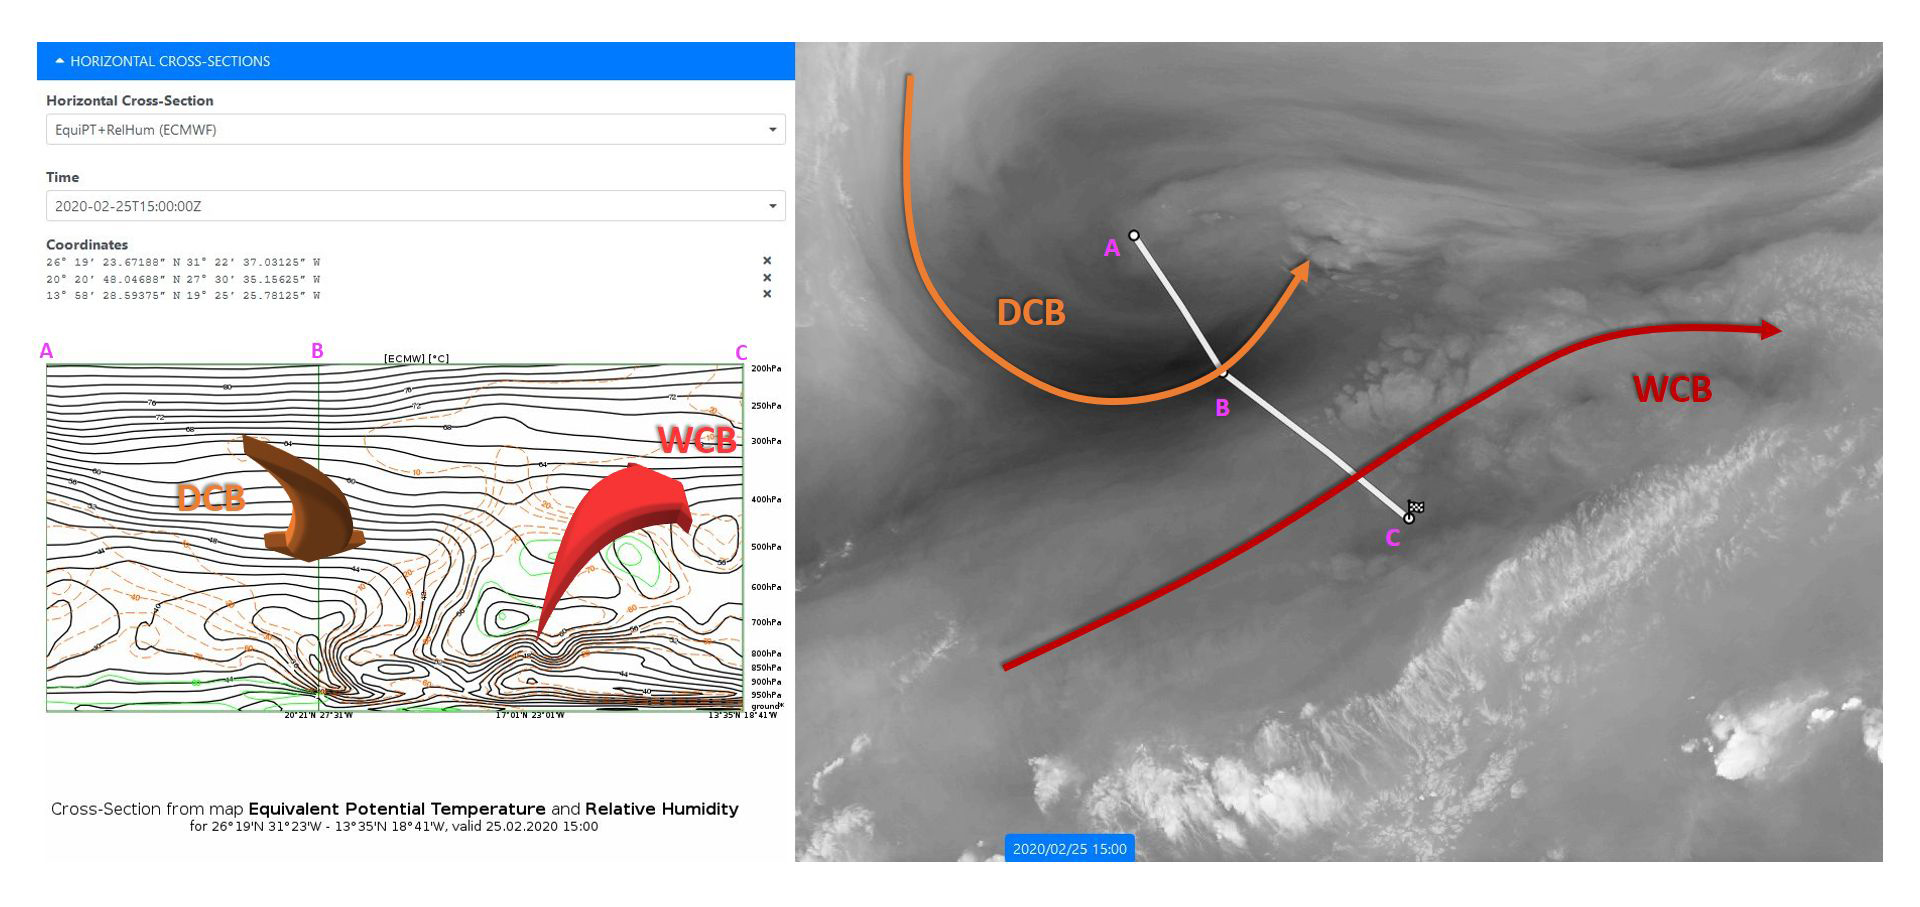 Vertical cross-section cutting through both DCB and WCB (left panel), and associated WV6.2 image (right panel). DCB is illustrated only by the yellow arrows and WCB by red.